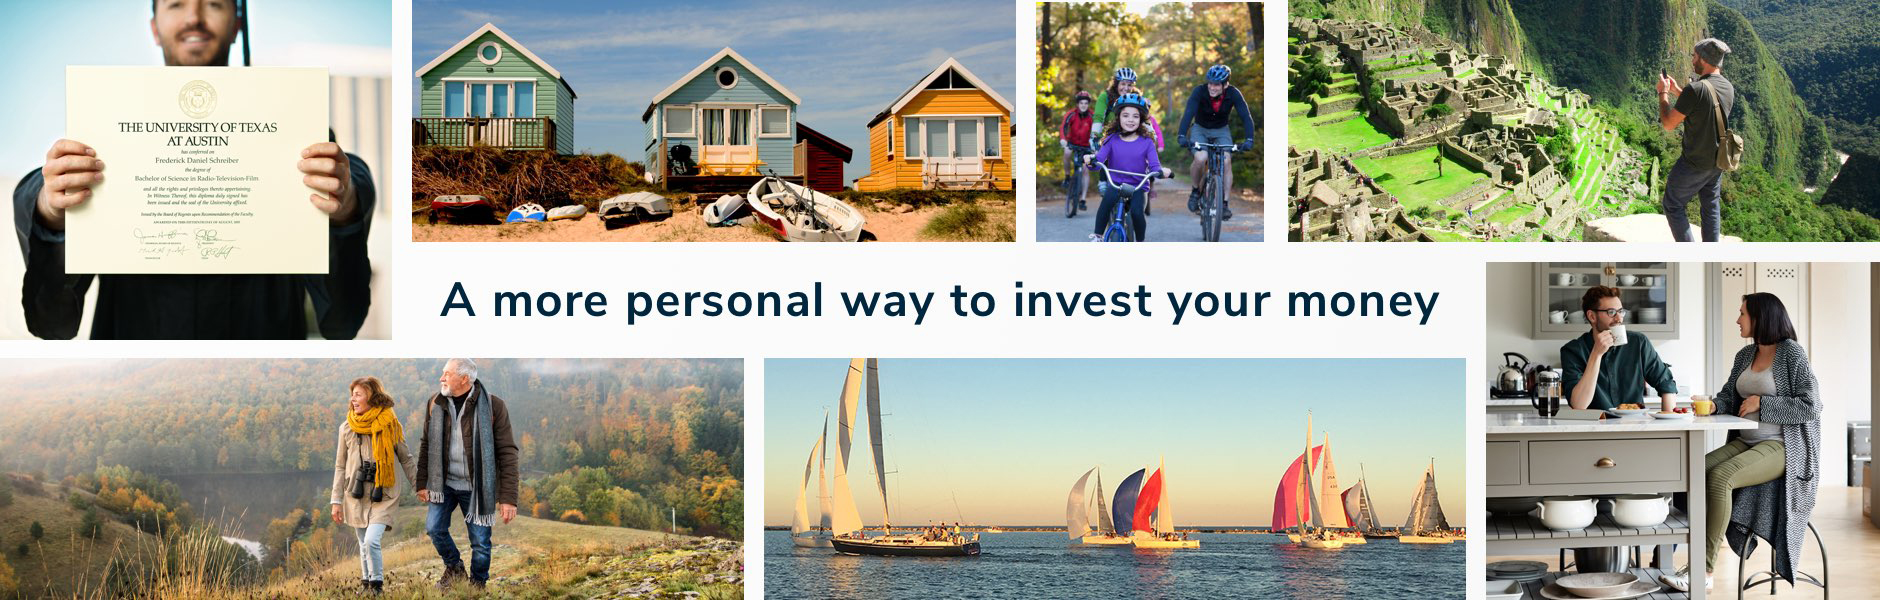 A more personal way to invest your money